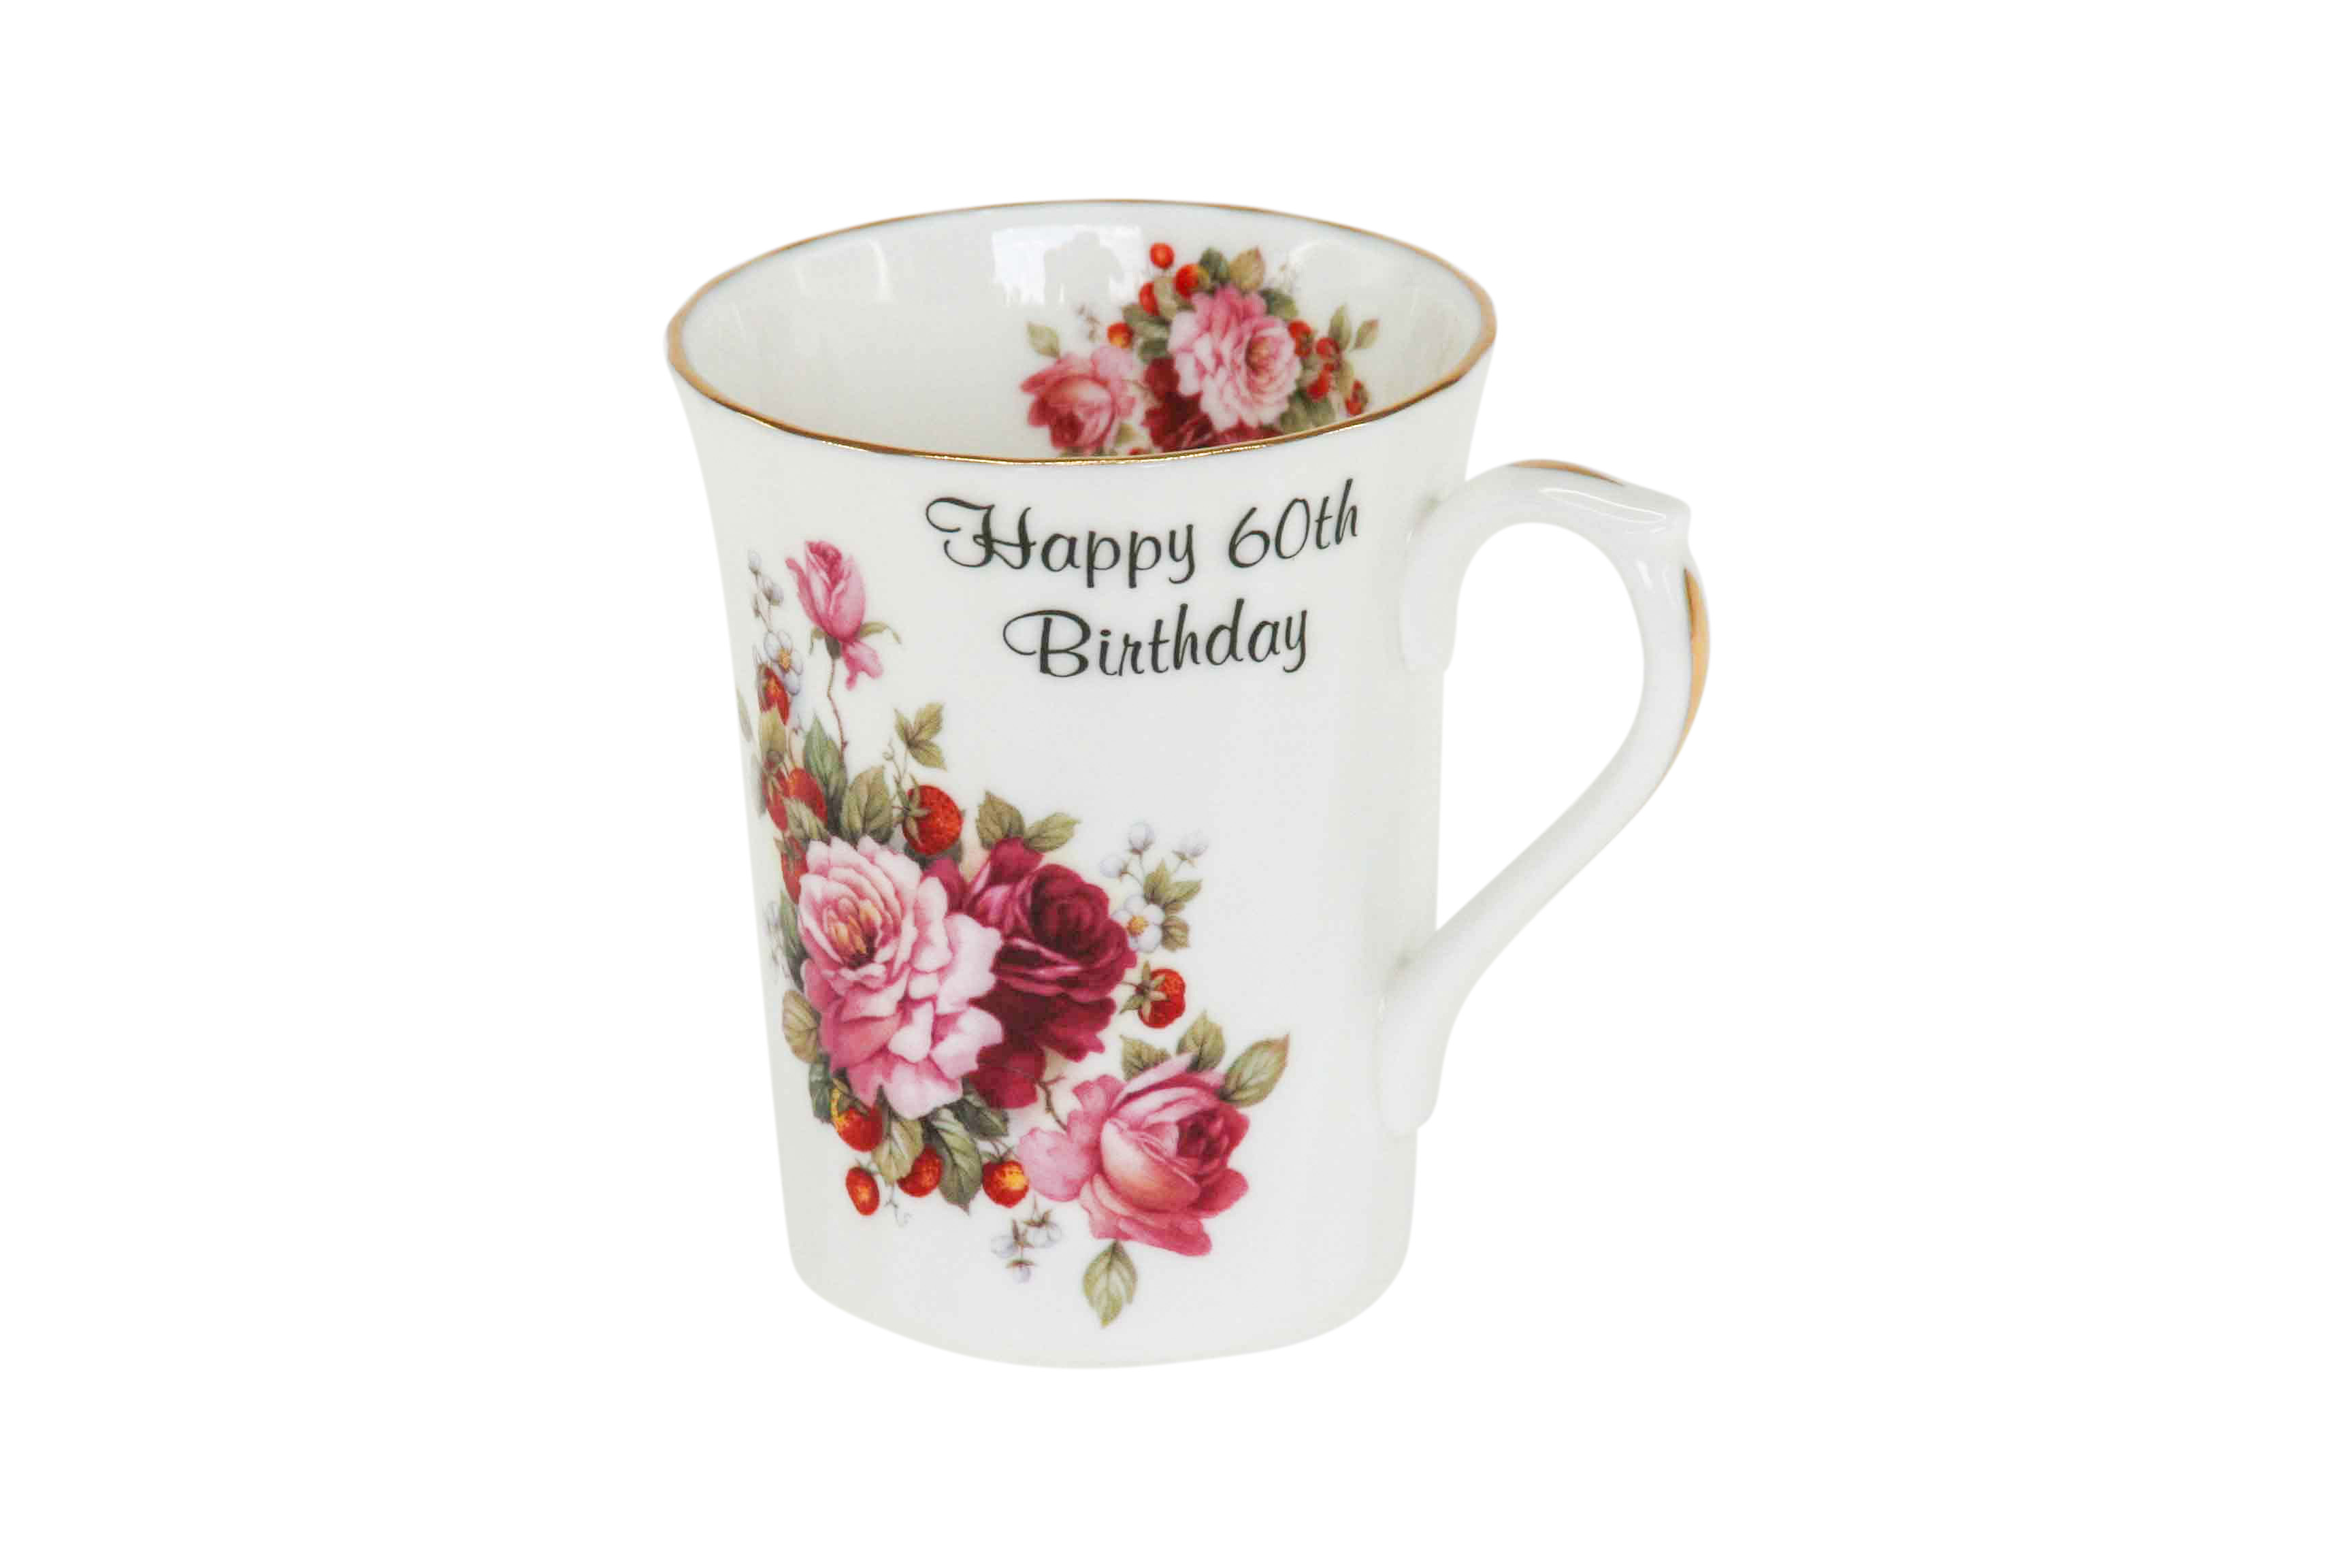 60th Birthday Swirl Mug